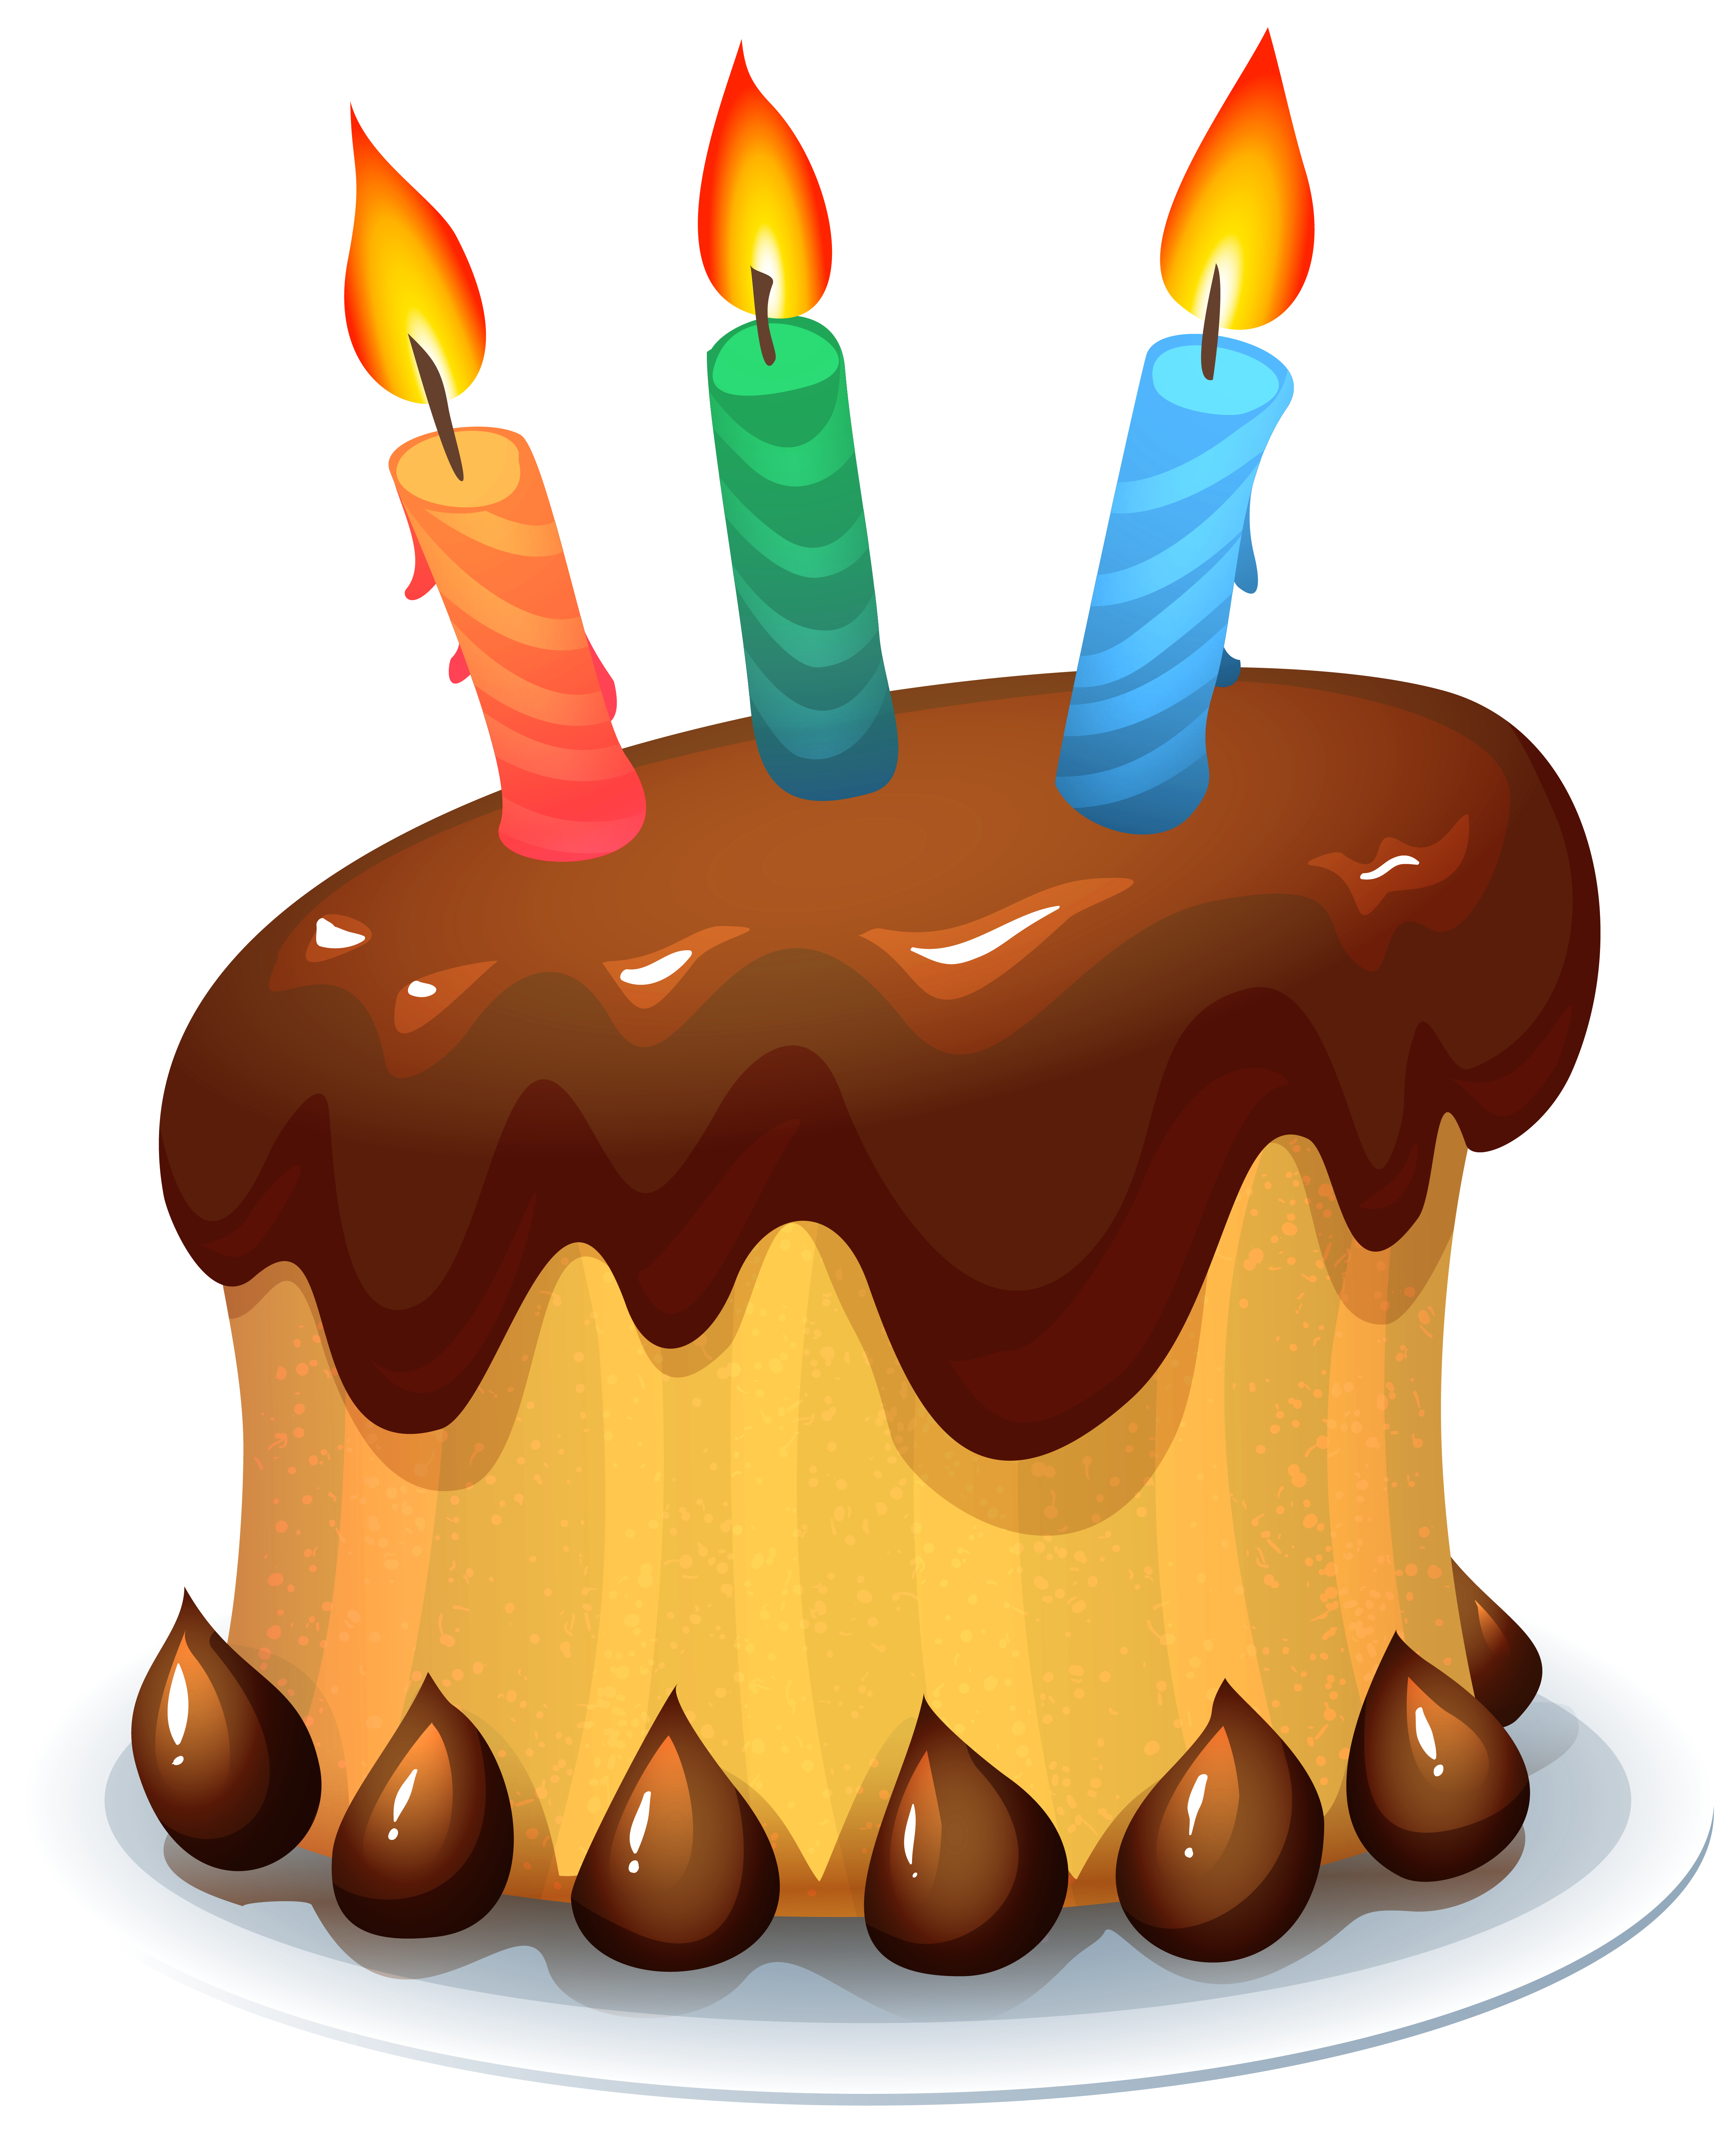 Birthday cake png picture. Clipart halloween baked goods